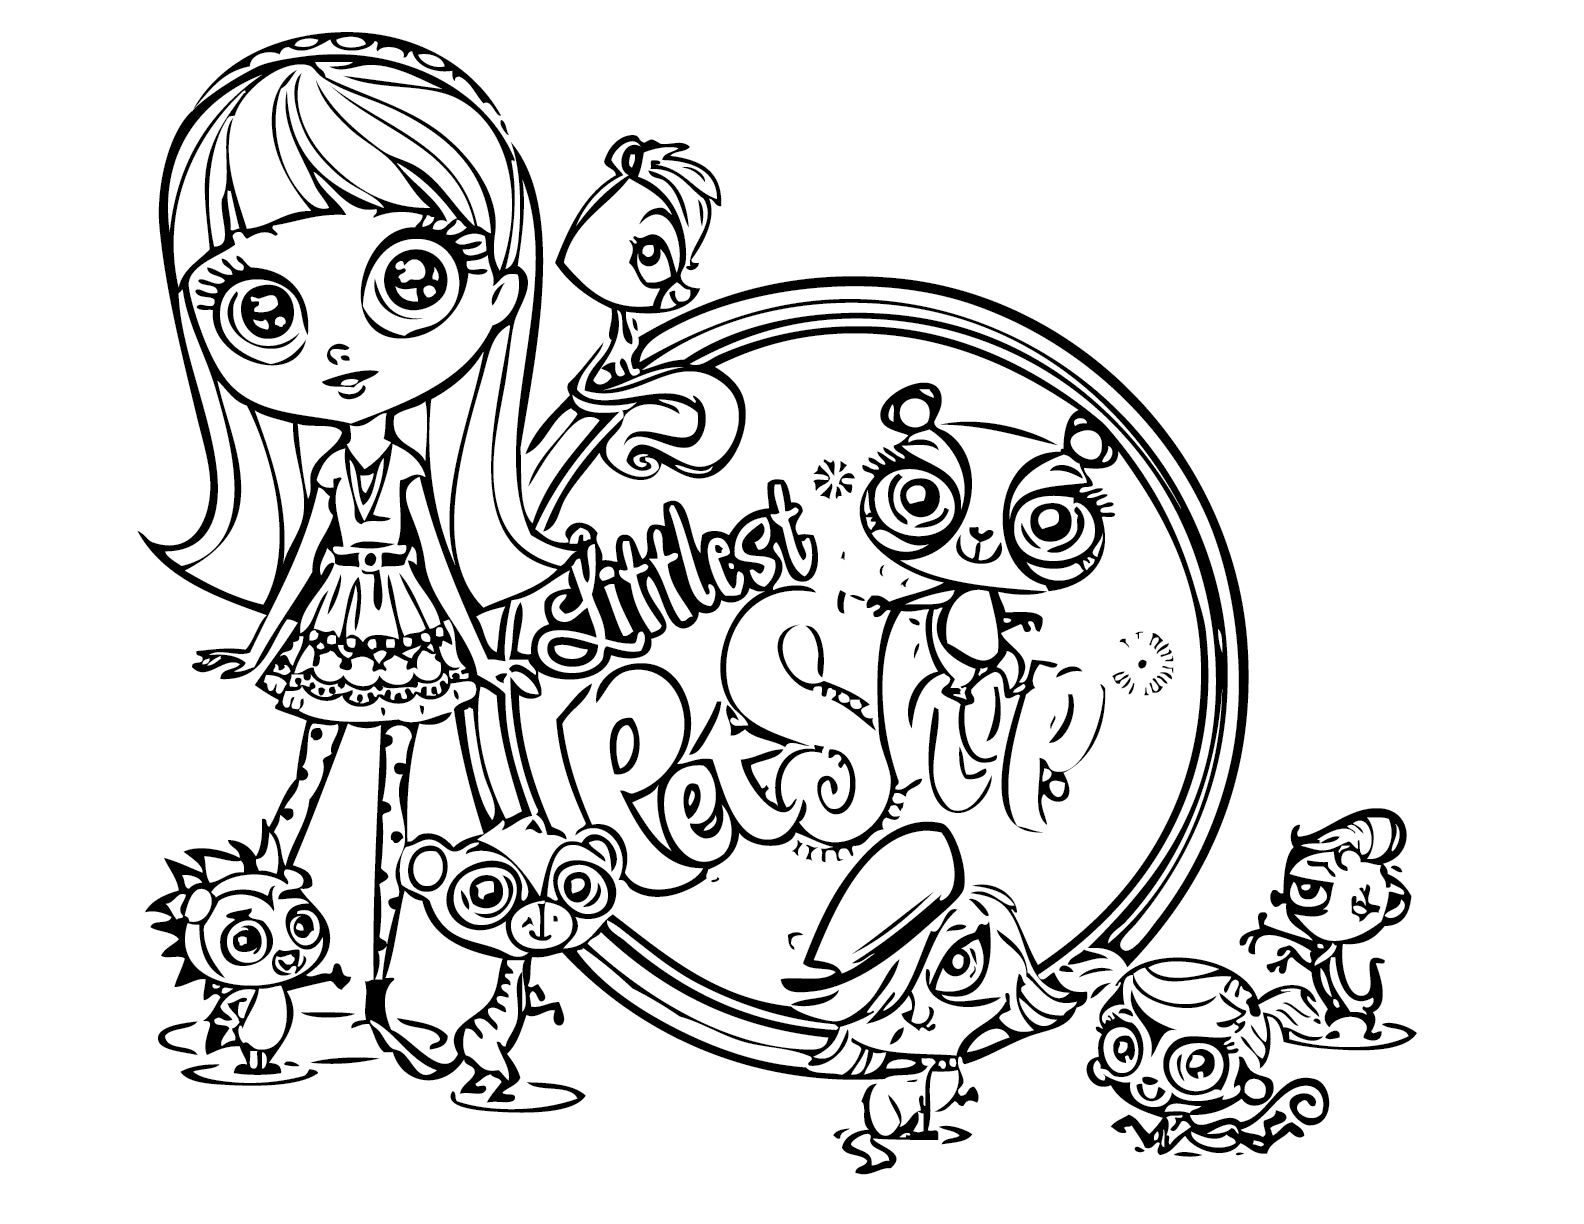 Littlest Pet Shop coloring pages - Squid Army